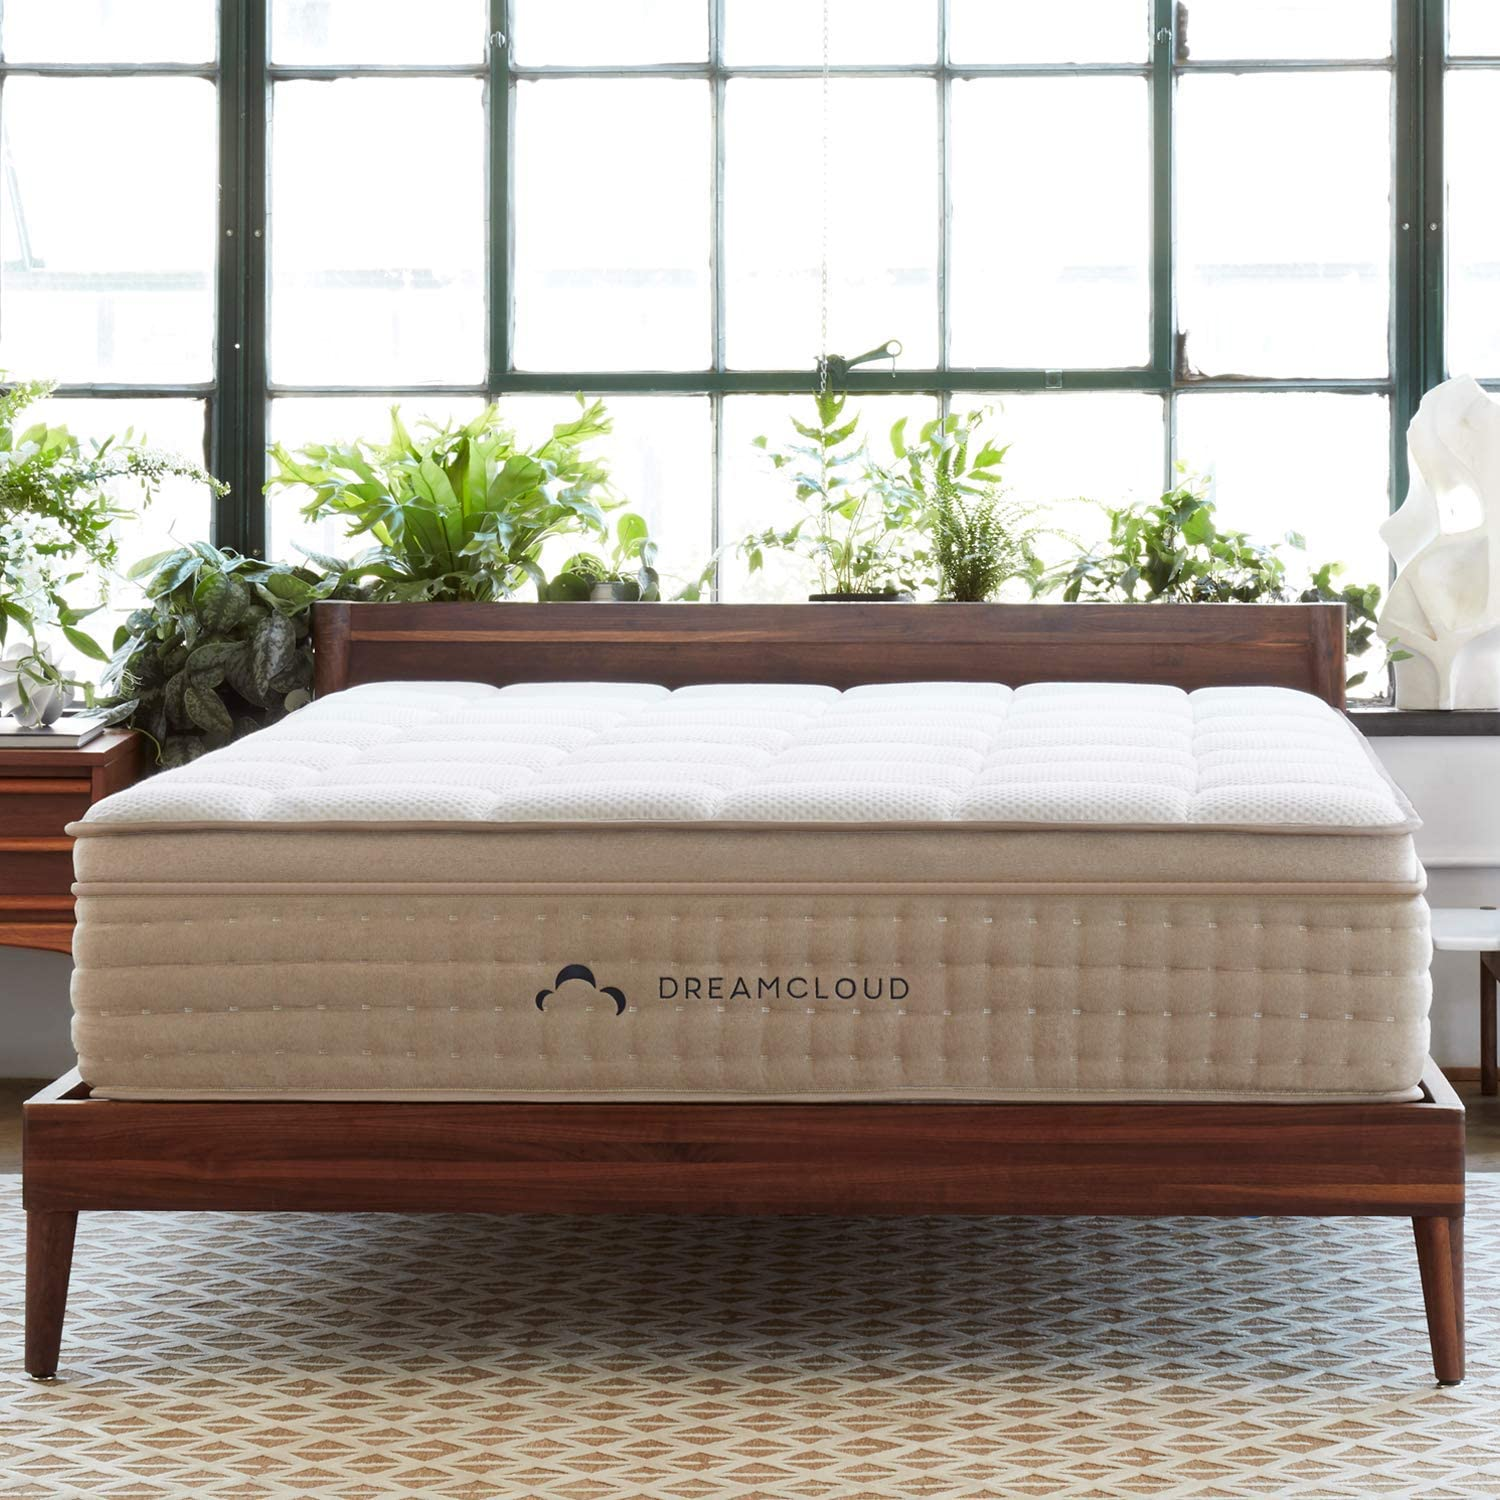 DreamCloud King Mattress - Luxury Hybrid Mattress with 6 Premium Layers - CertiPUR-US Certified - 180 Night Home Trial - Everlong Warranty